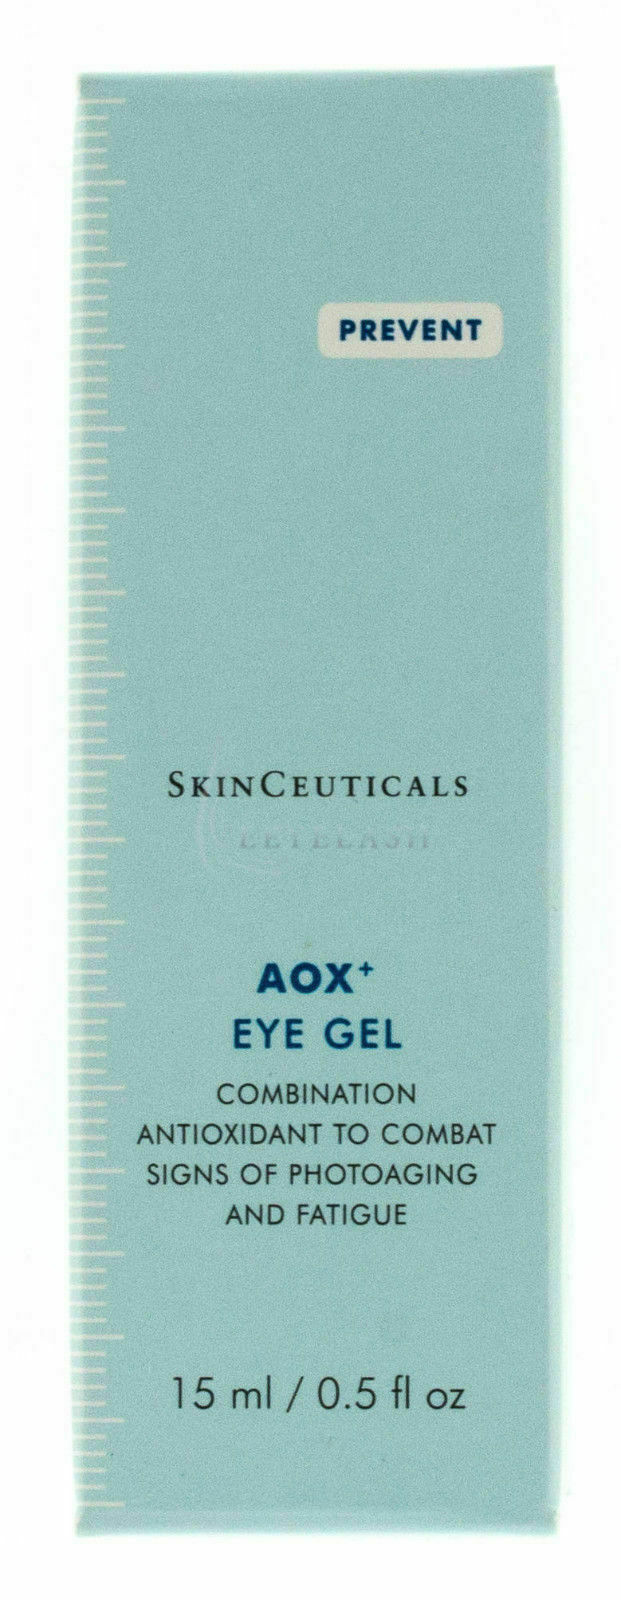 Skinceuticals Aox + Eye Gel 0.5oz / 15ml Brand In Box & Fresh